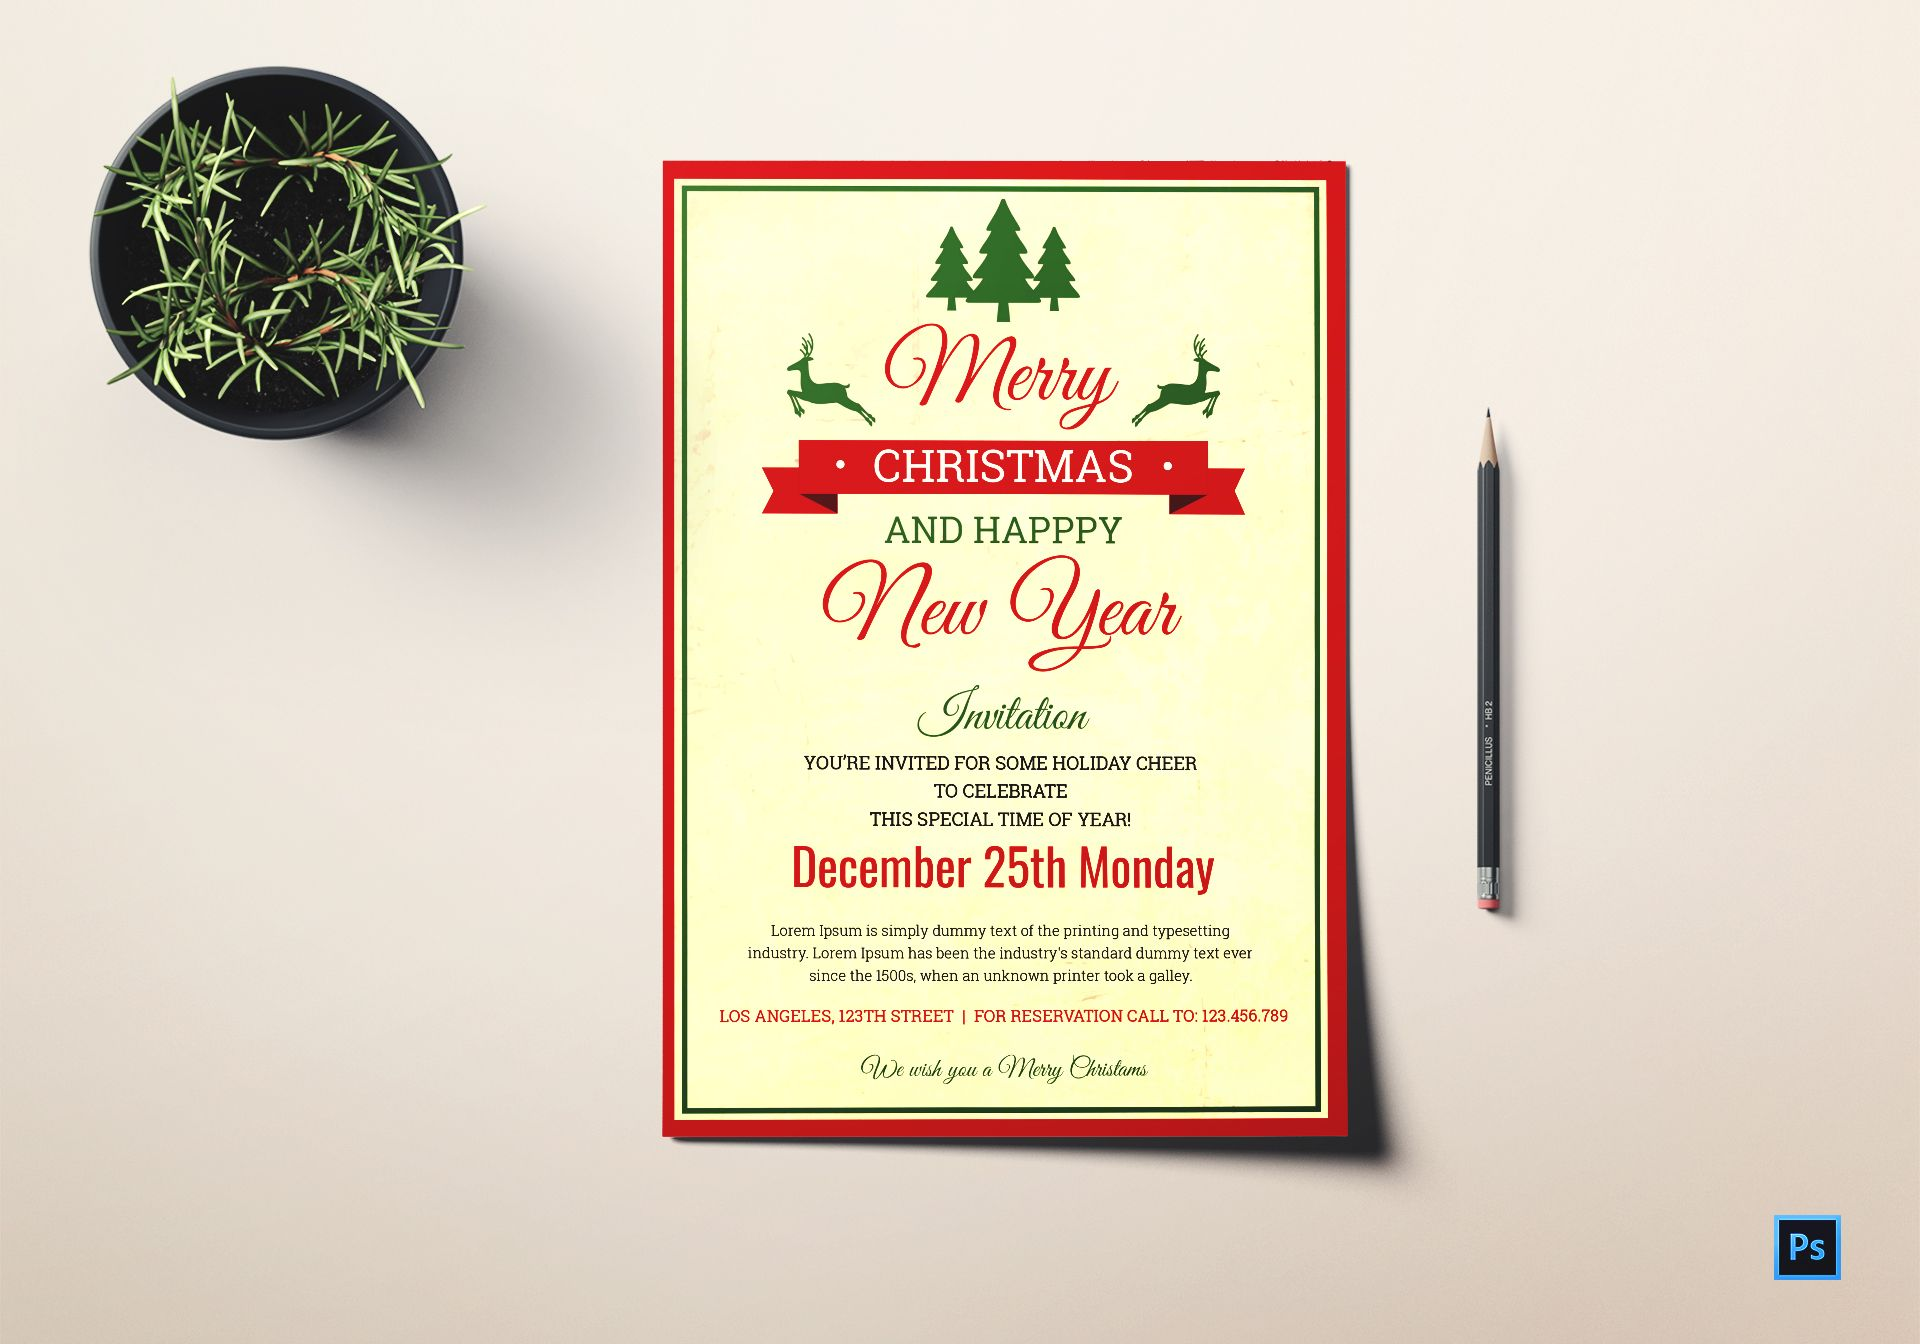 Christmas and New Year invitation Template in Adobe Photoshop Christmas and New Year invitation